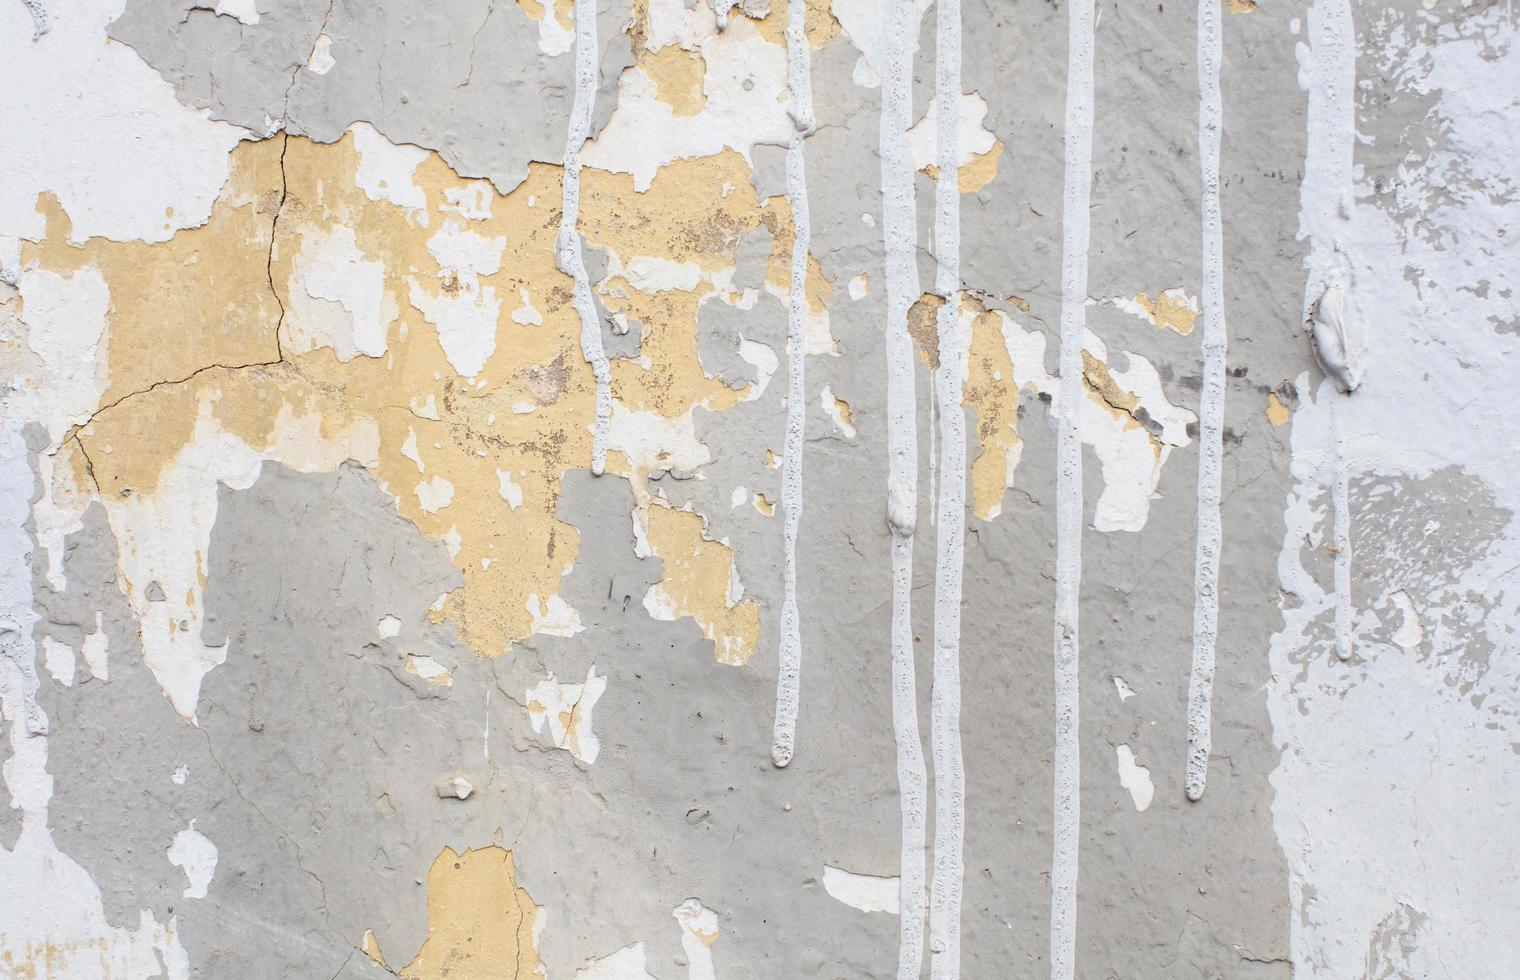 White paint drips on a wall photo